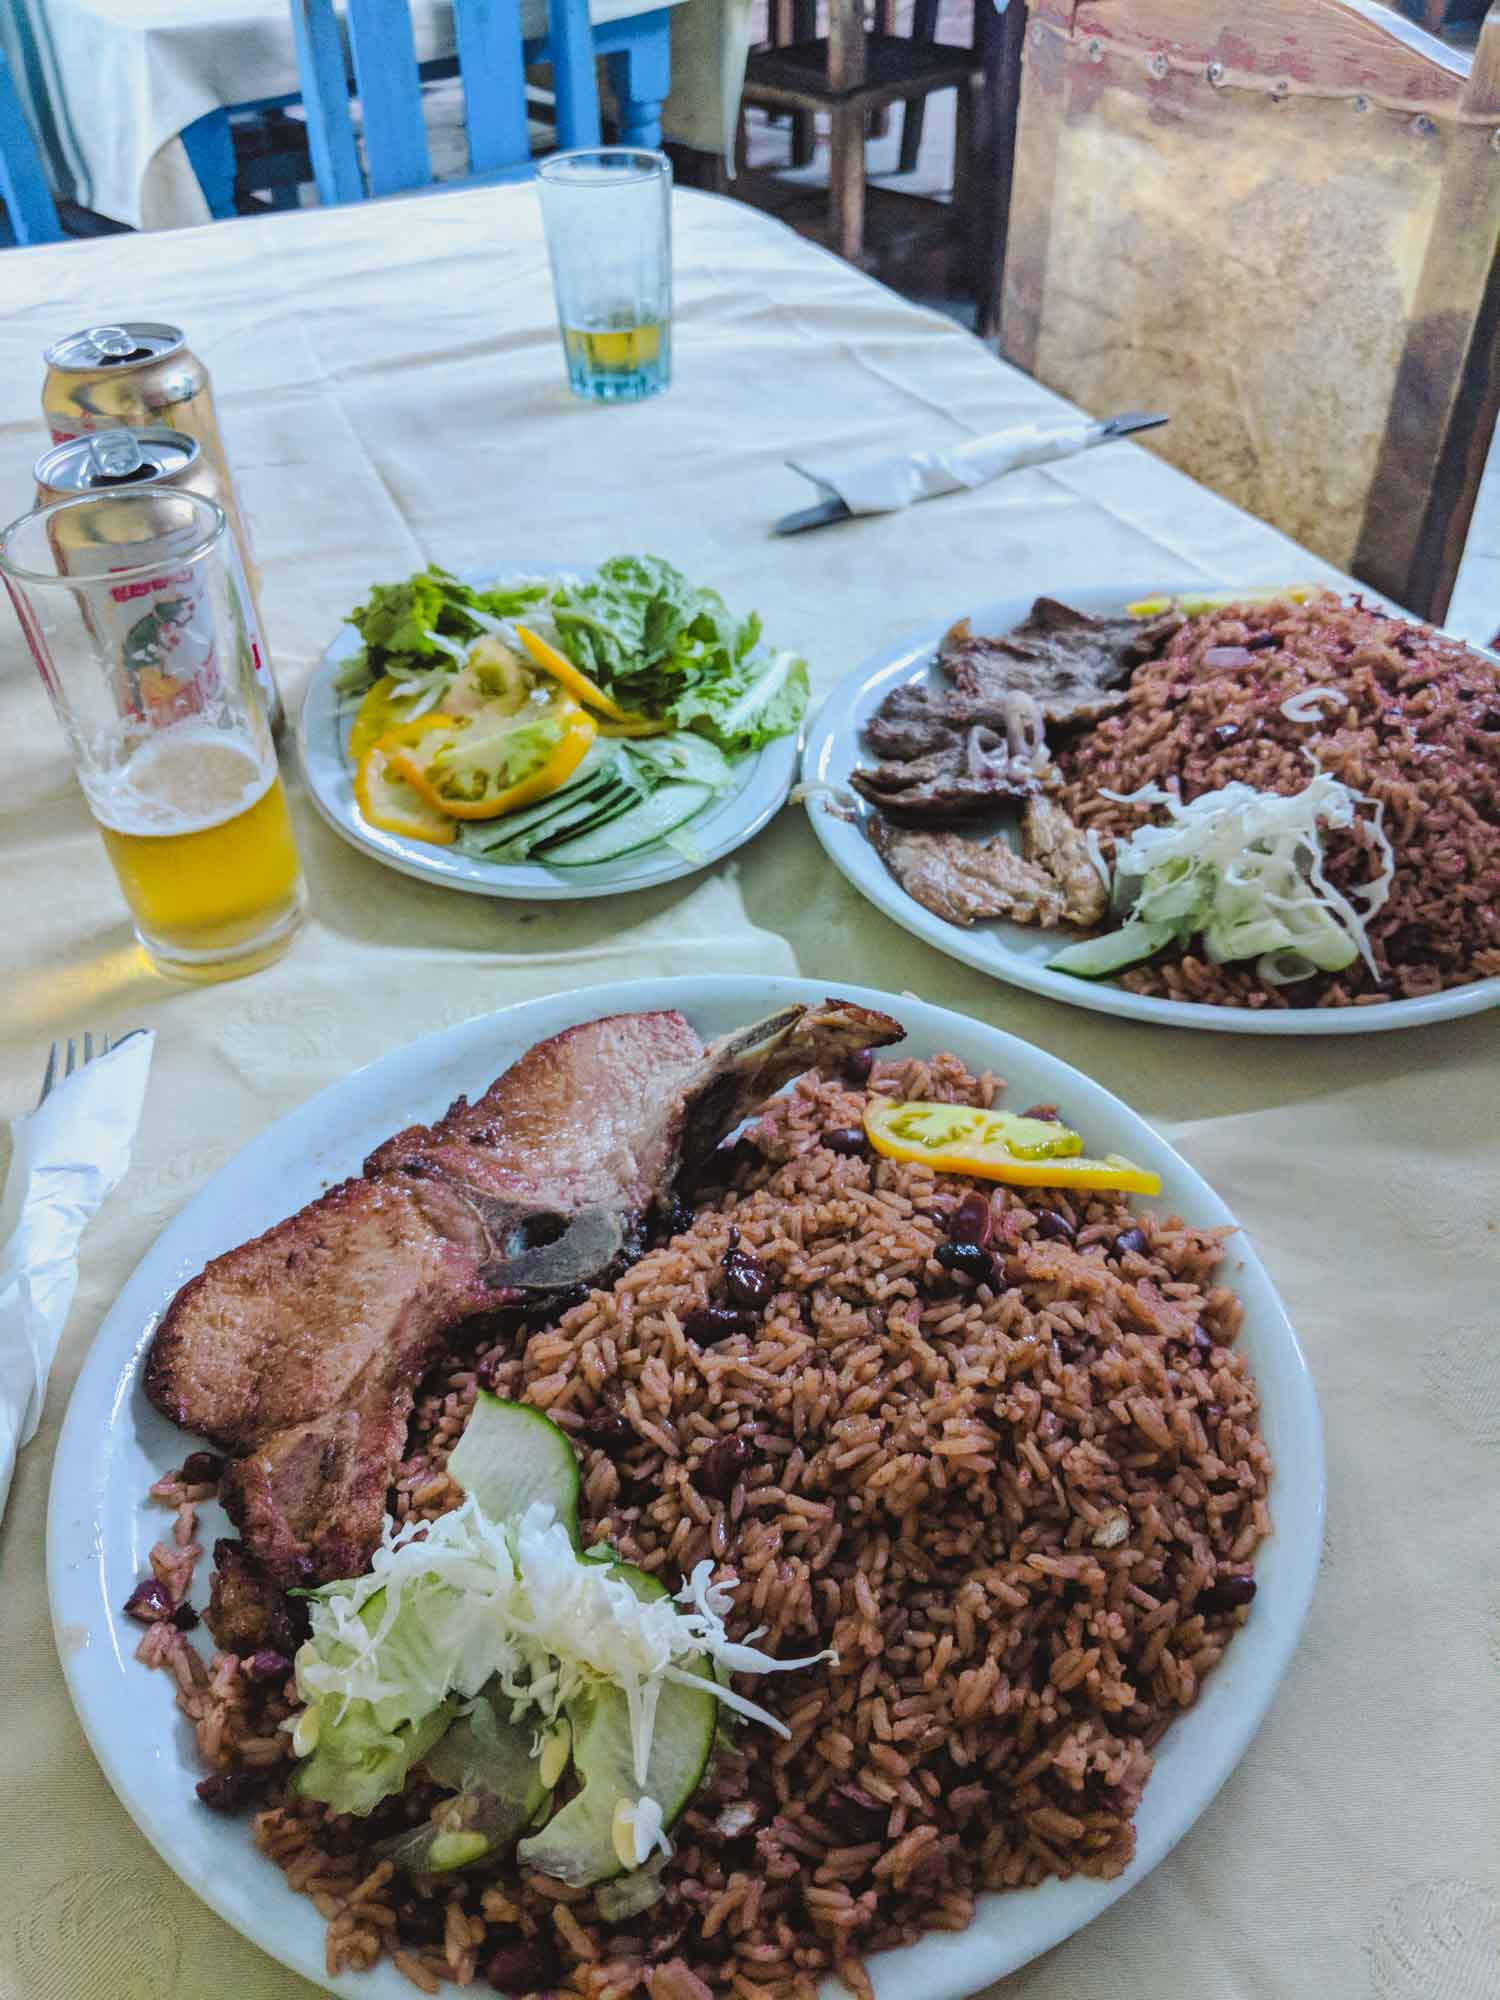 Plate of Cuban food at a paladare restaurant in Cuba